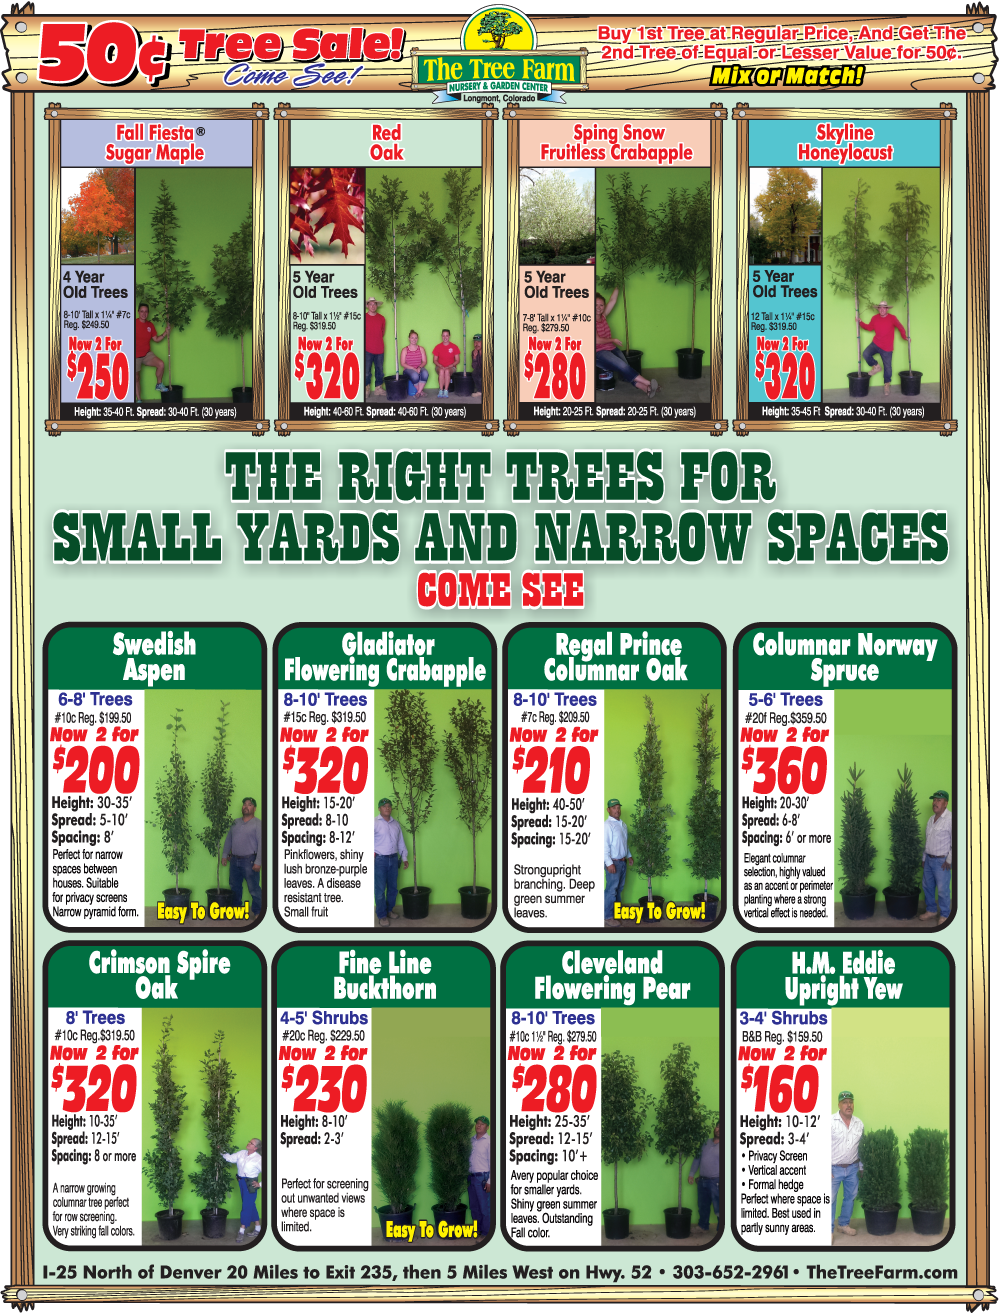 Serious Tree Sale...Going On Now